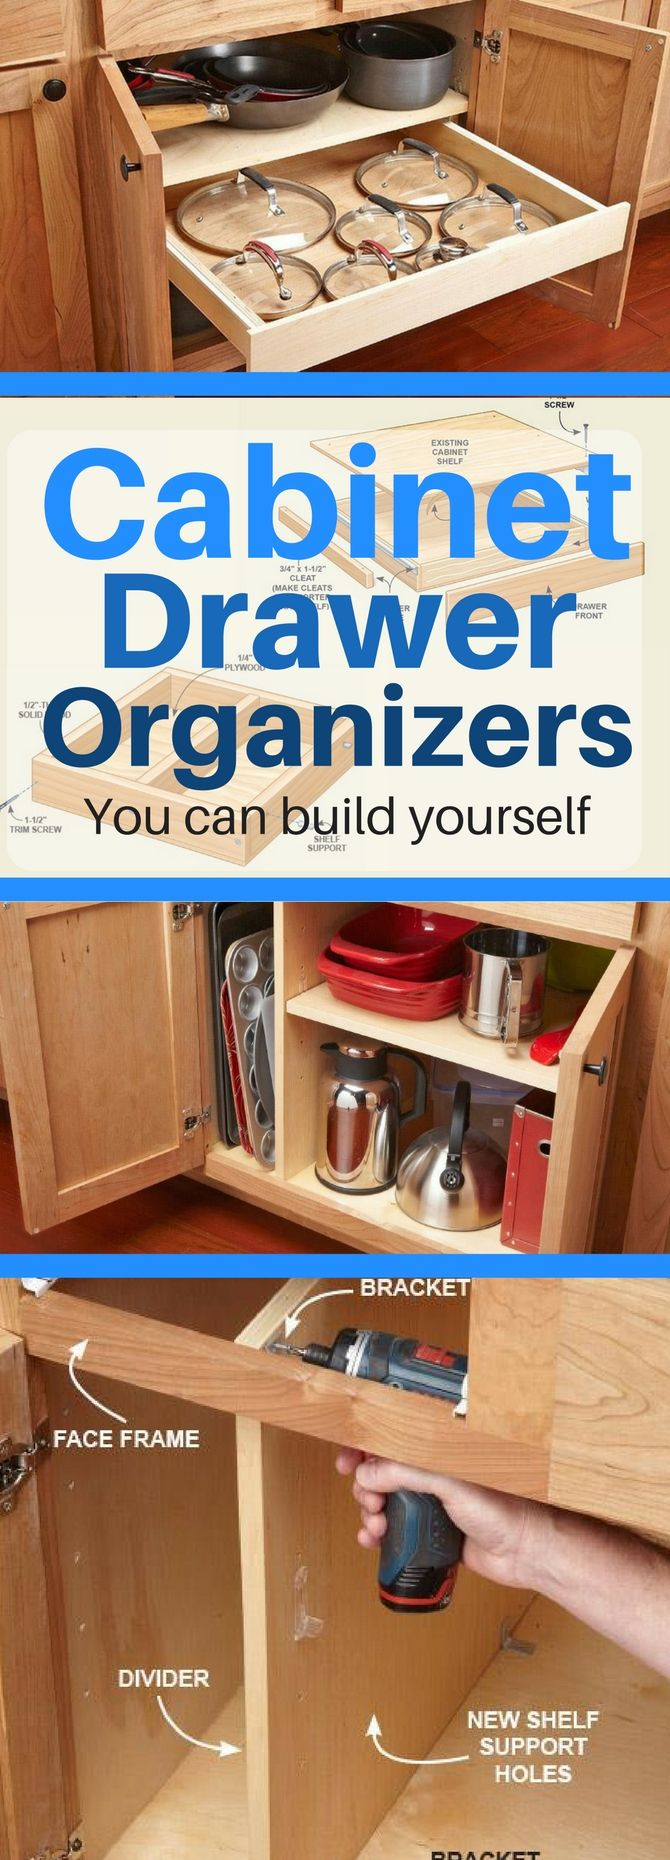 10 Kitchen Cabinet Drawer Organizers You Can Build Yourself Kitchen Cabinet Storage Kitchen Drawers Drawer Organizers